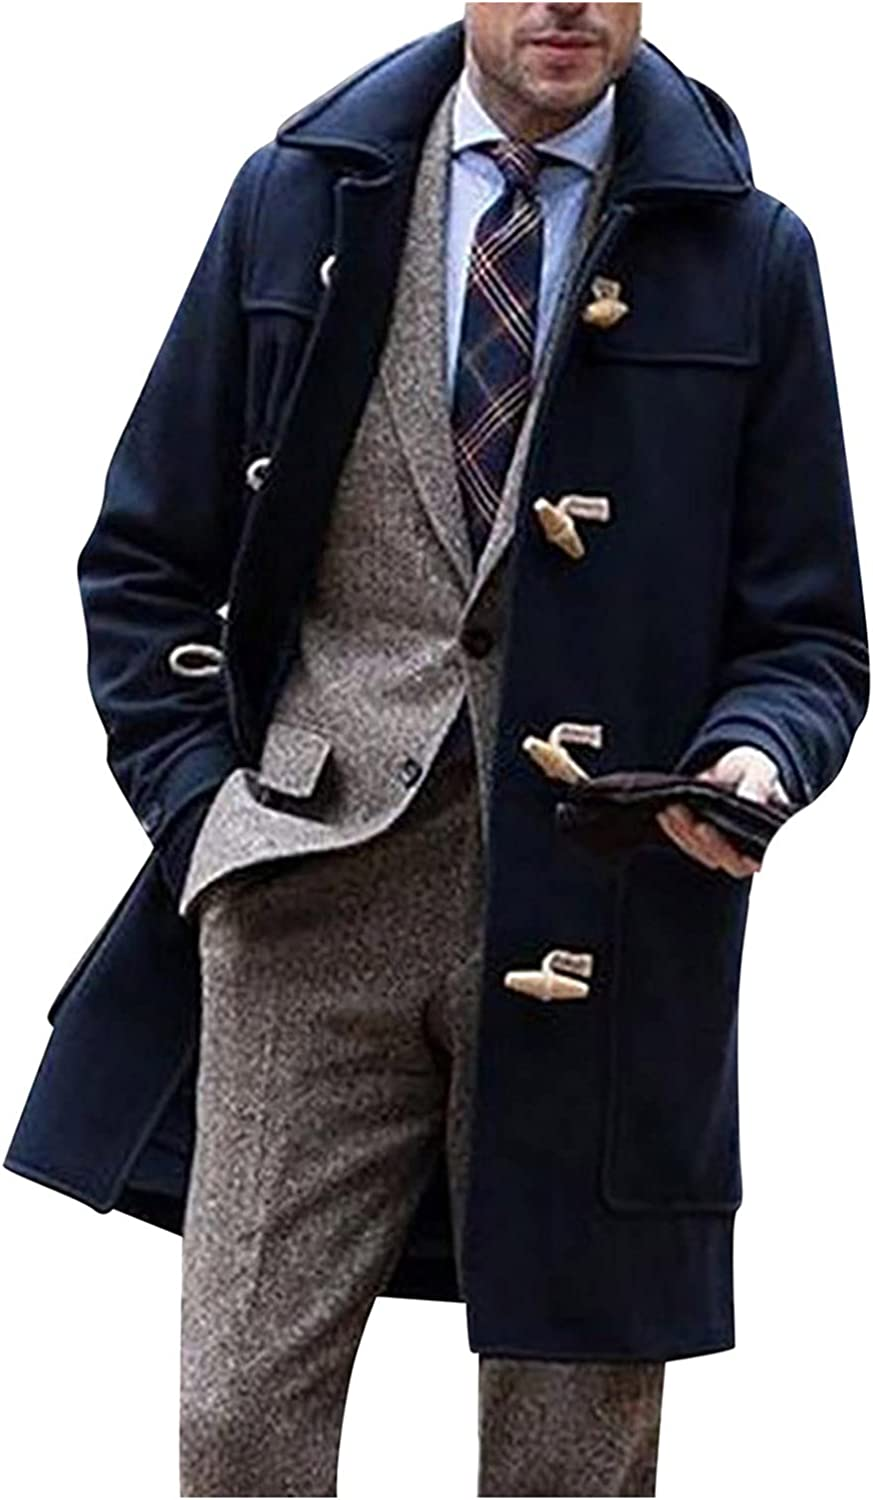 Huangse Men's Classic Notched Lapel Single Breasted Trench Coat Autumn Winter Mid-Length Button Down Peacoat